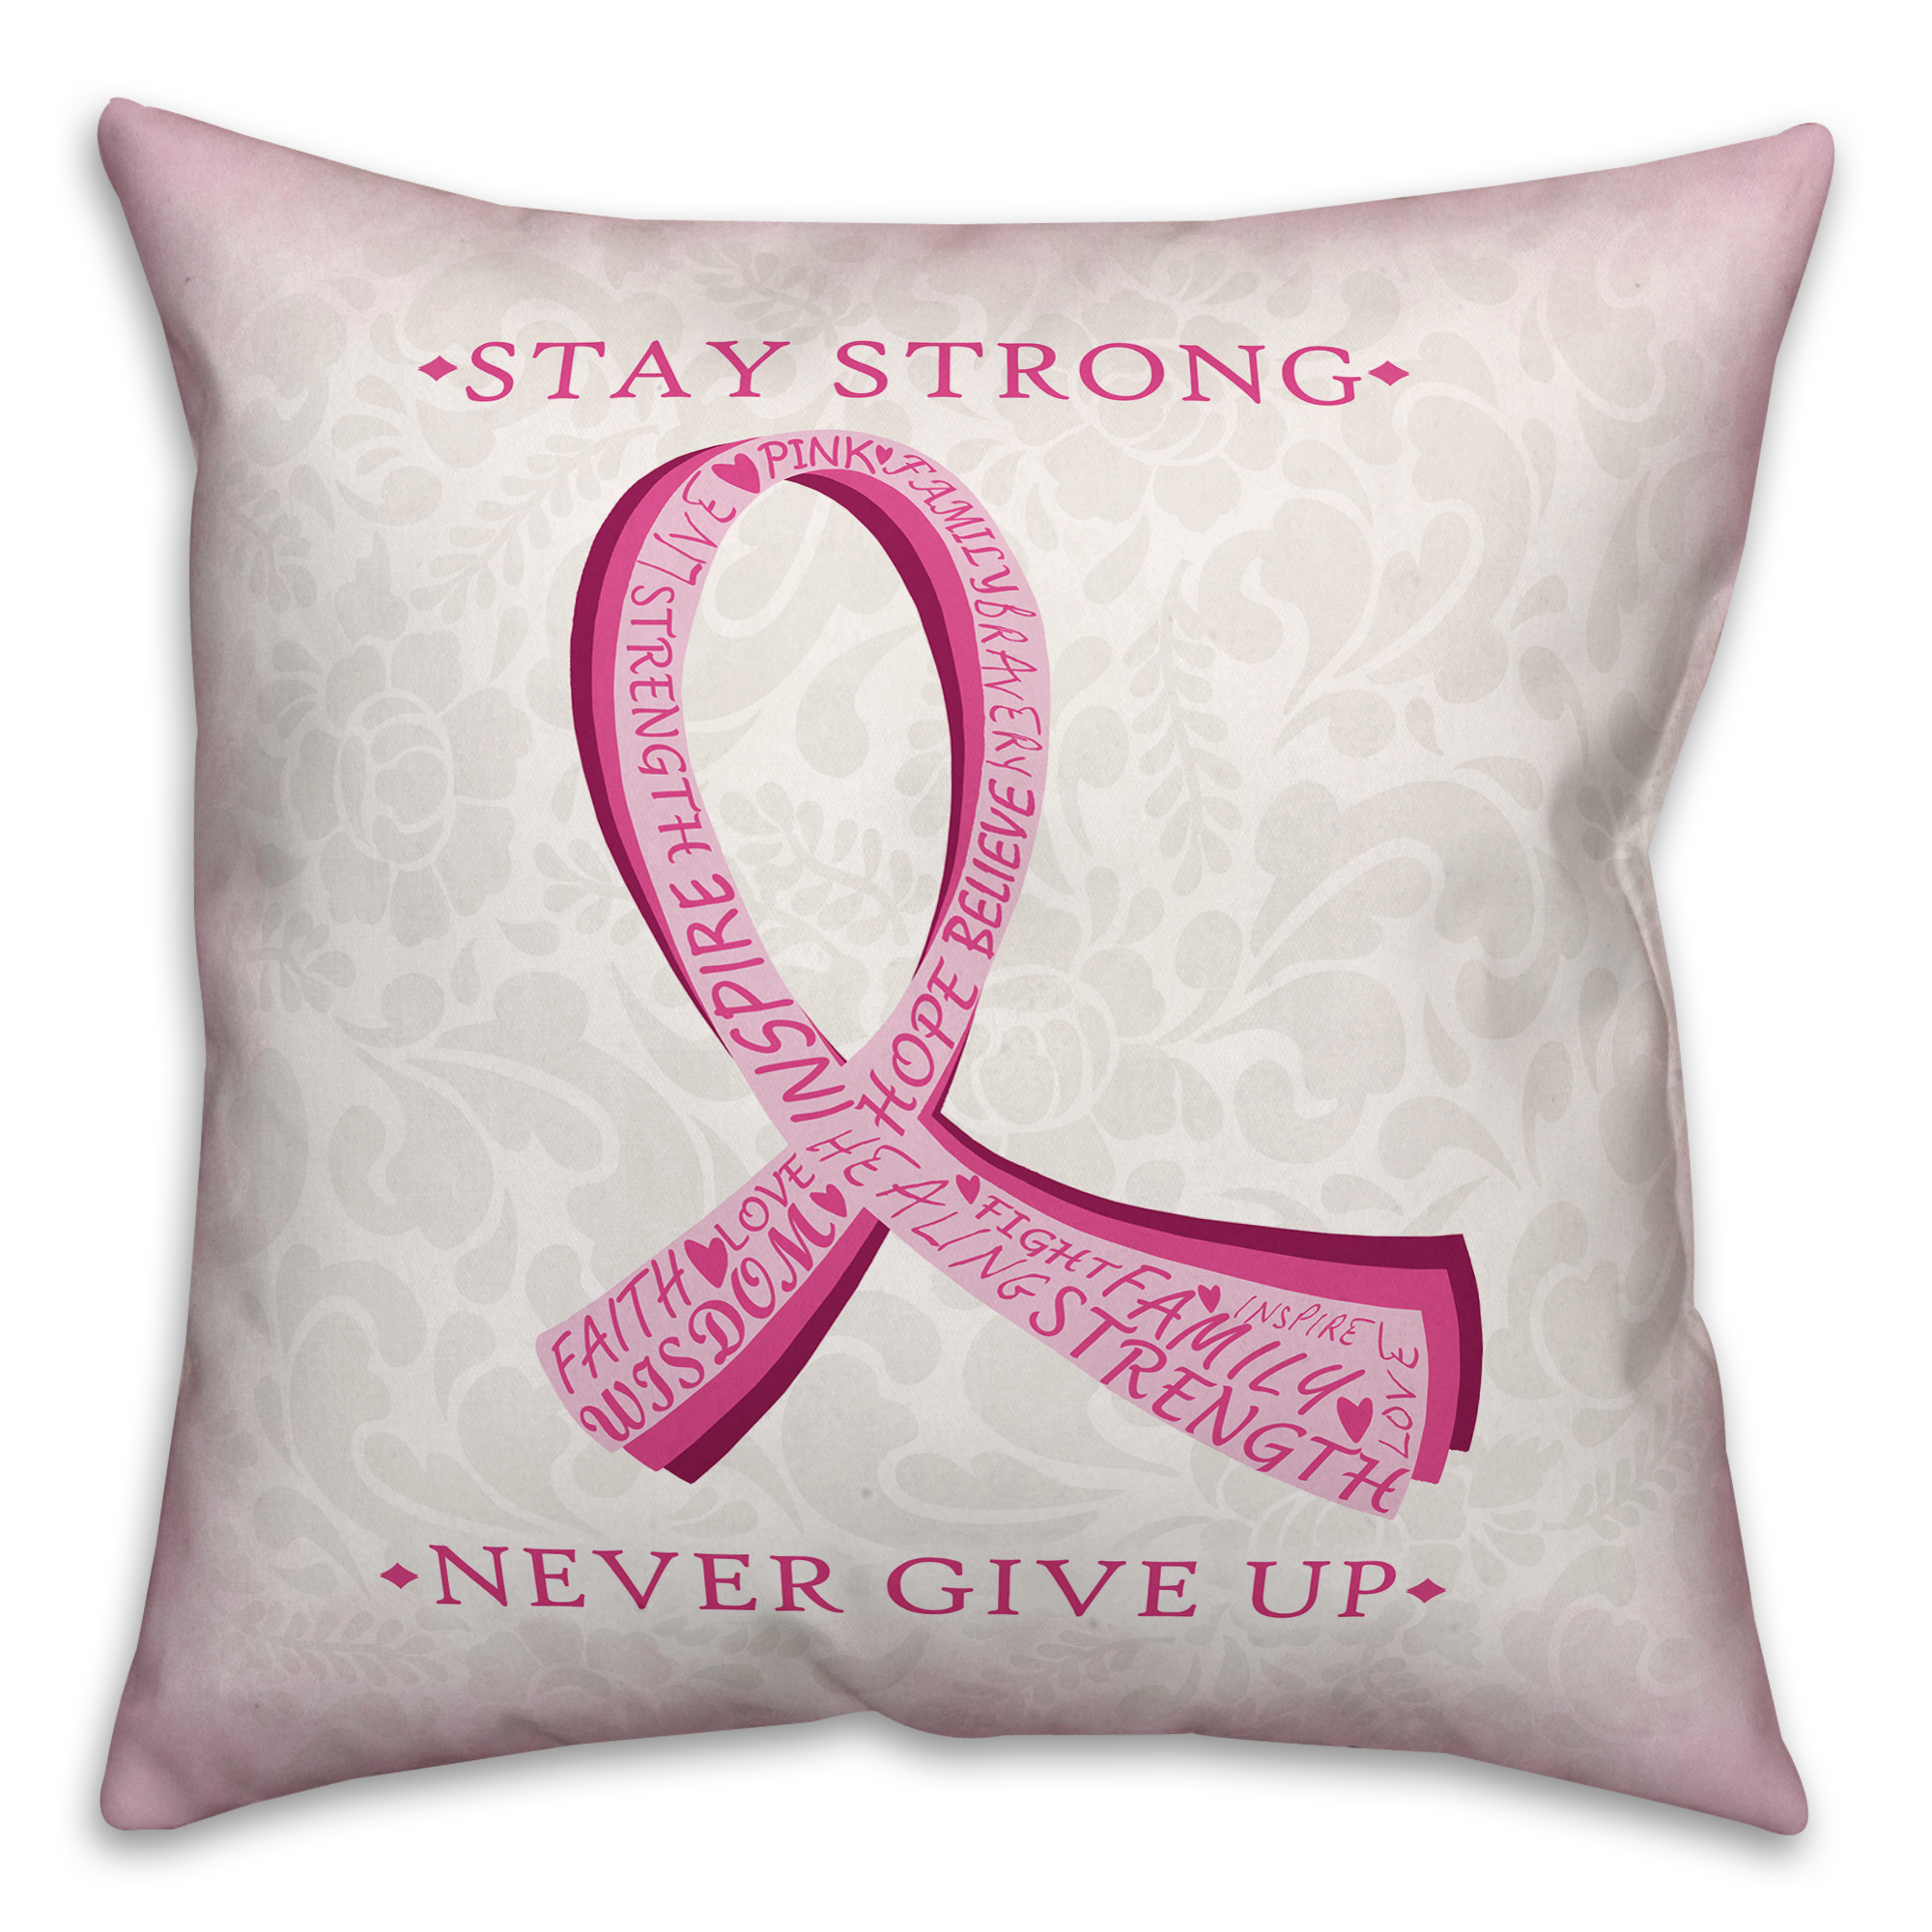 Fight Breast Cancer Stay Strong 18x18 Spun Poly Pillow